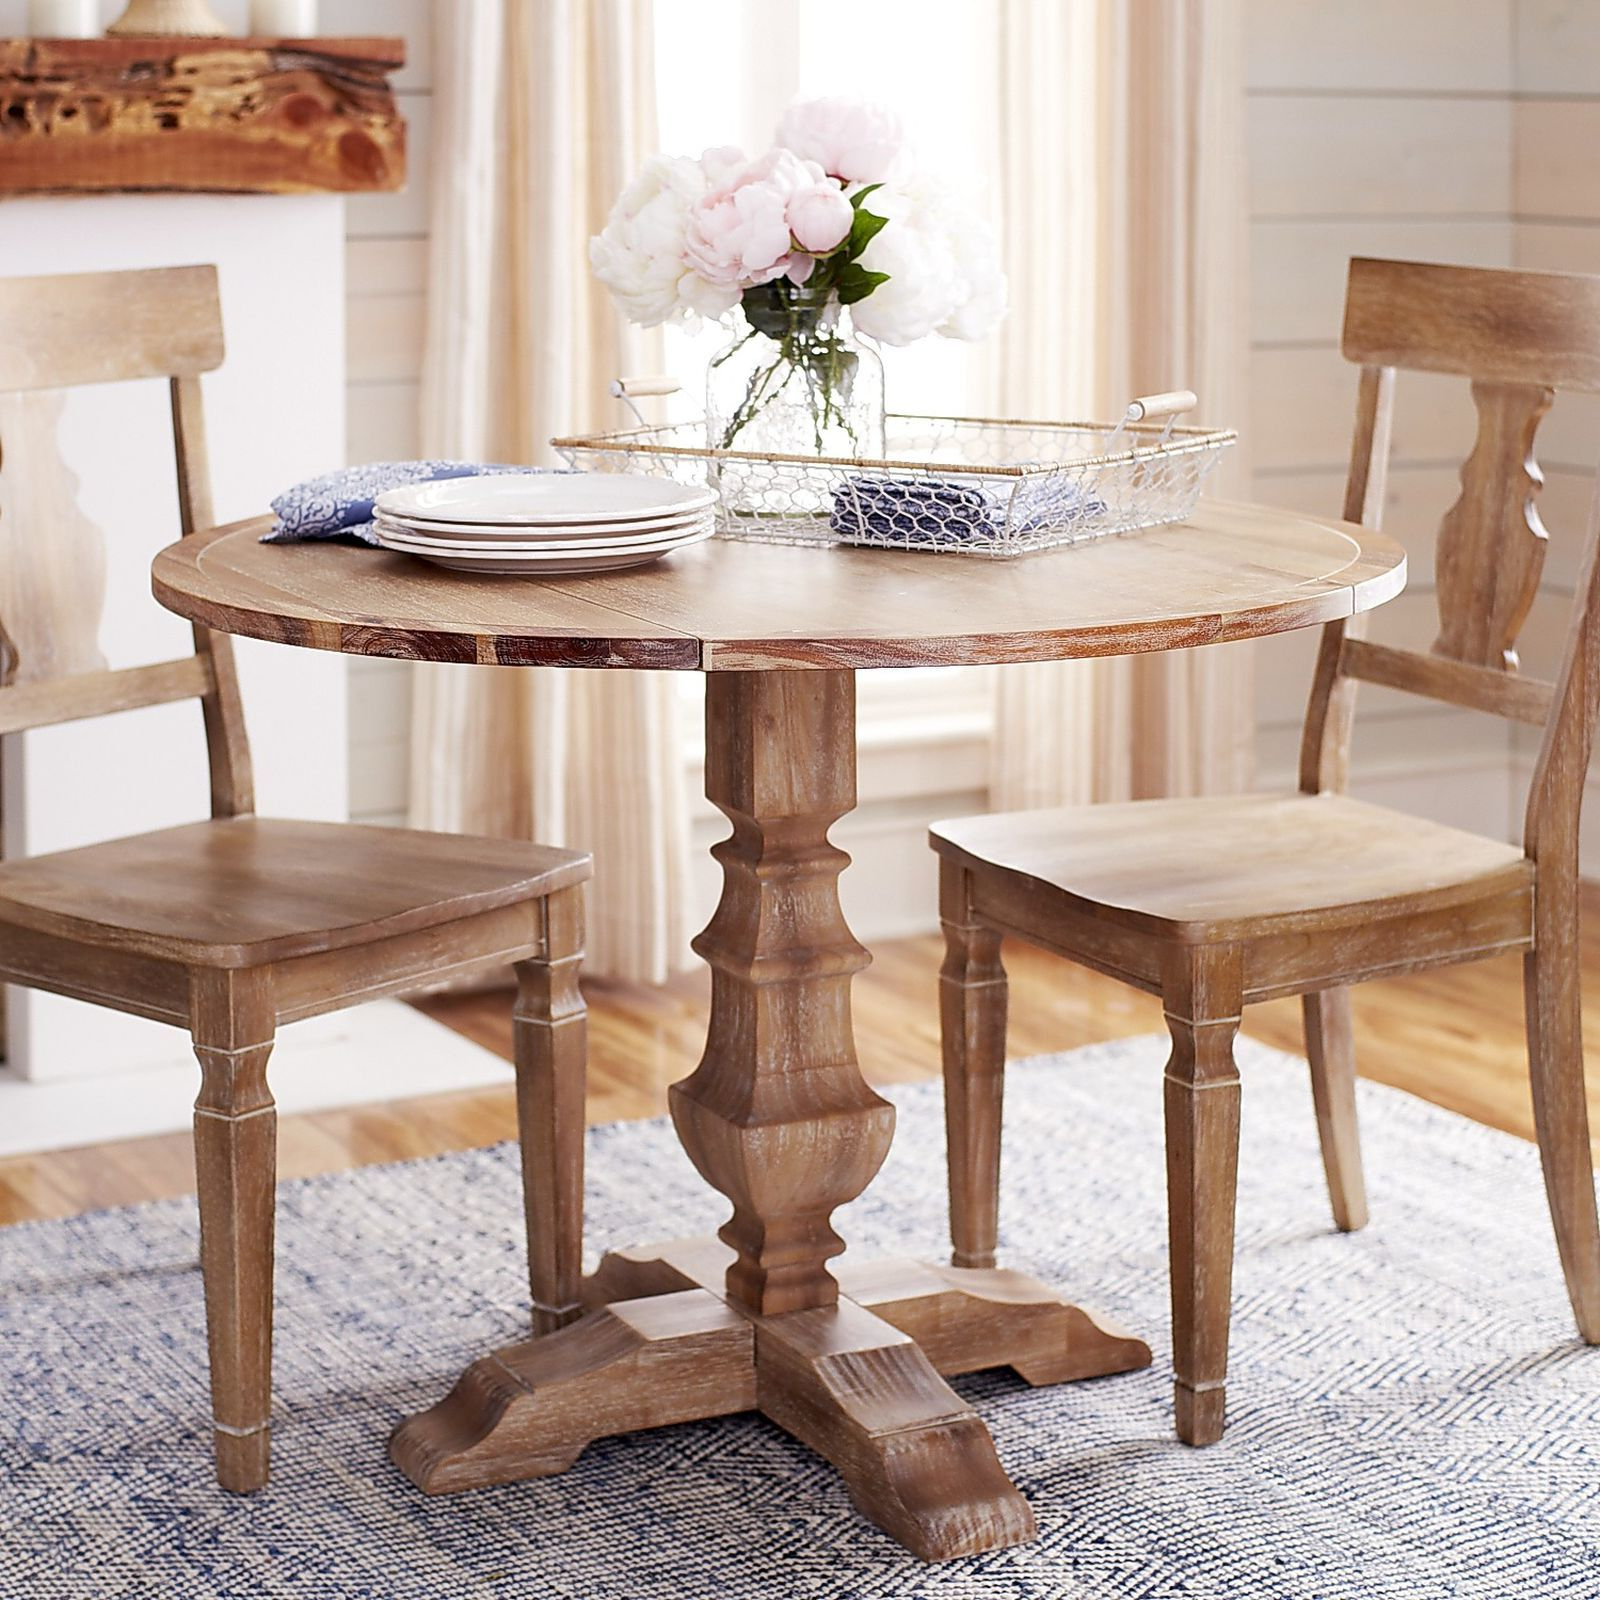 Bradding Natural Stonewash Round Drop Leaf Dining Table Regarding Most Popular Boothby Drop Leaf Rubberwood Solid Wood Pedestal Dining Tables (View 20 of 20)